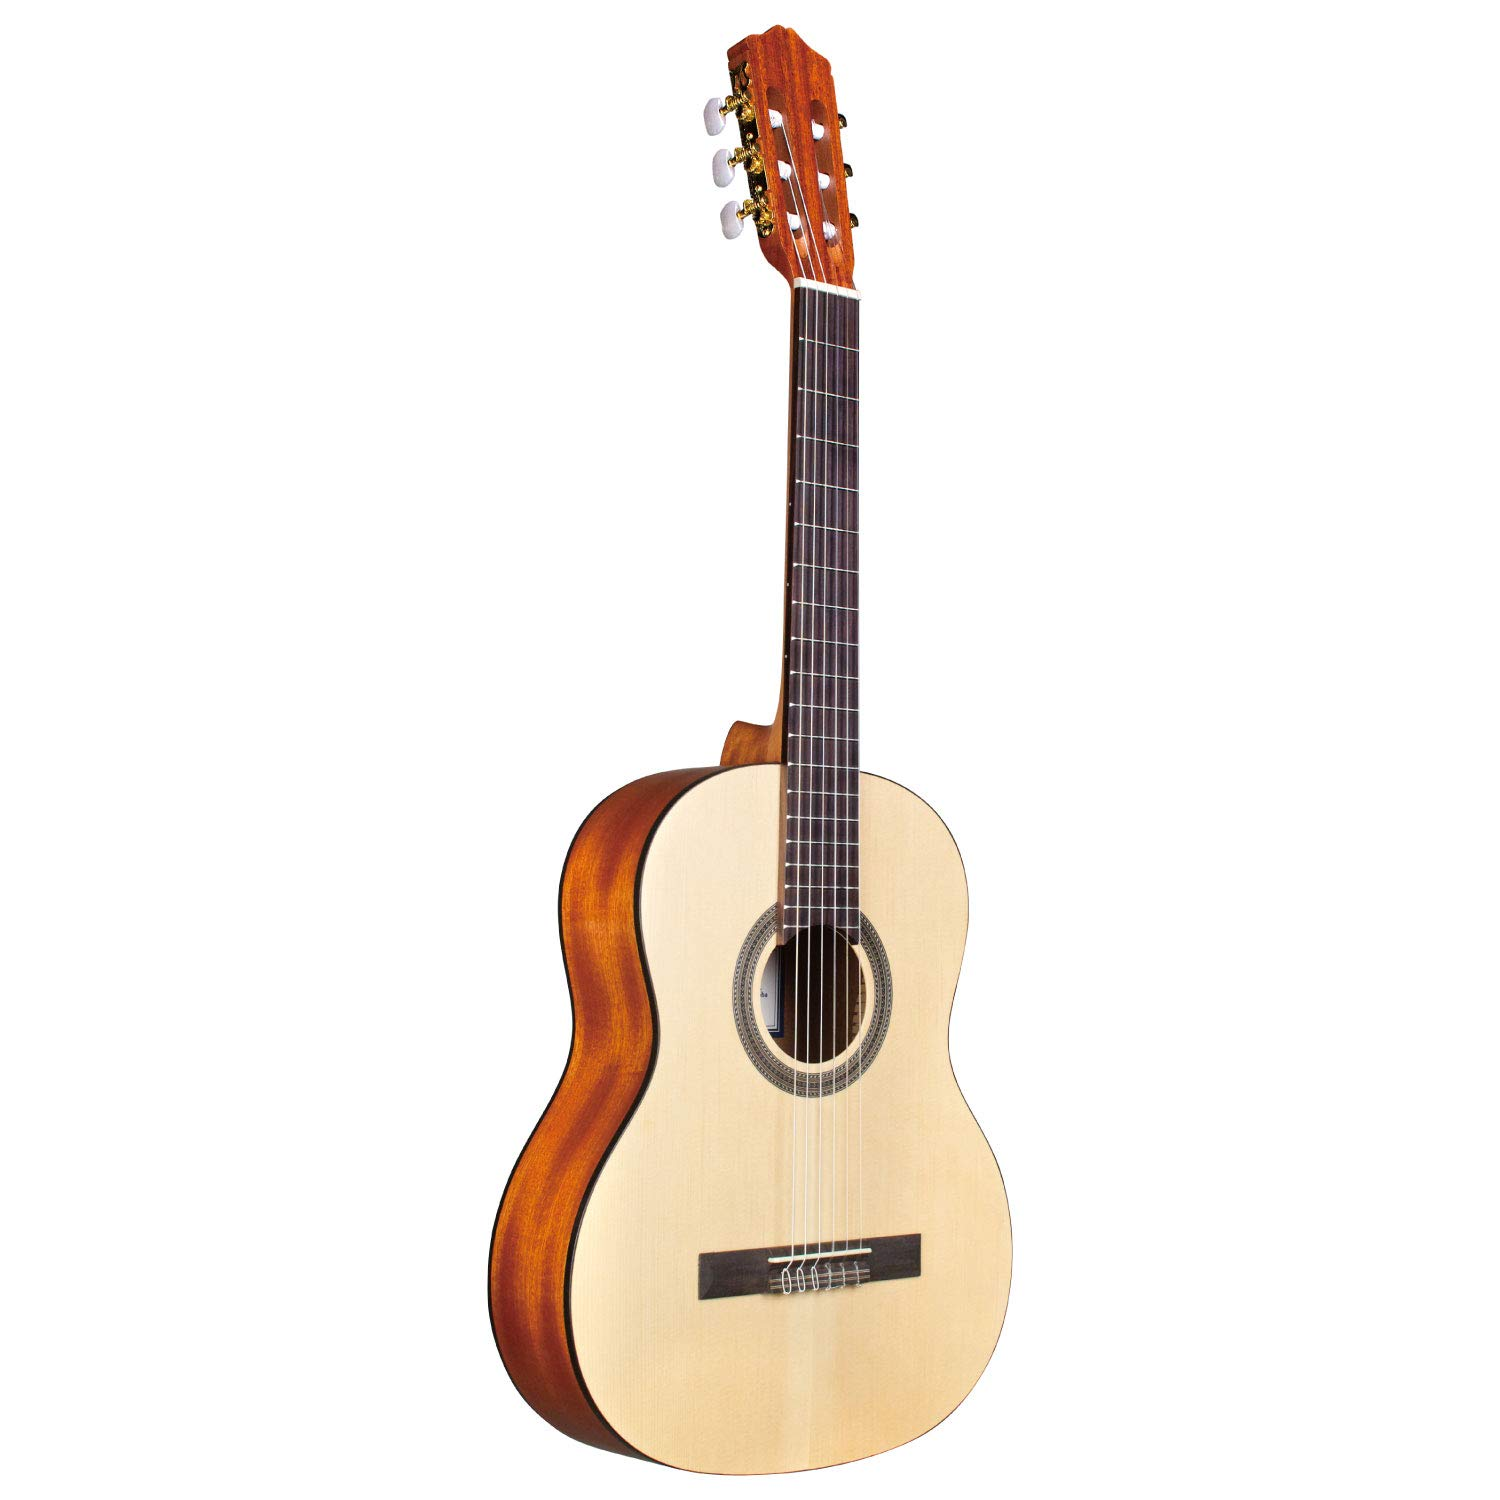 cordoba guitars 6 cordoba c1m 1 2 acoustic nylon string guitar right handed size guitar affinity. Black Bedroom Furniture Sets. Home Design Ideas